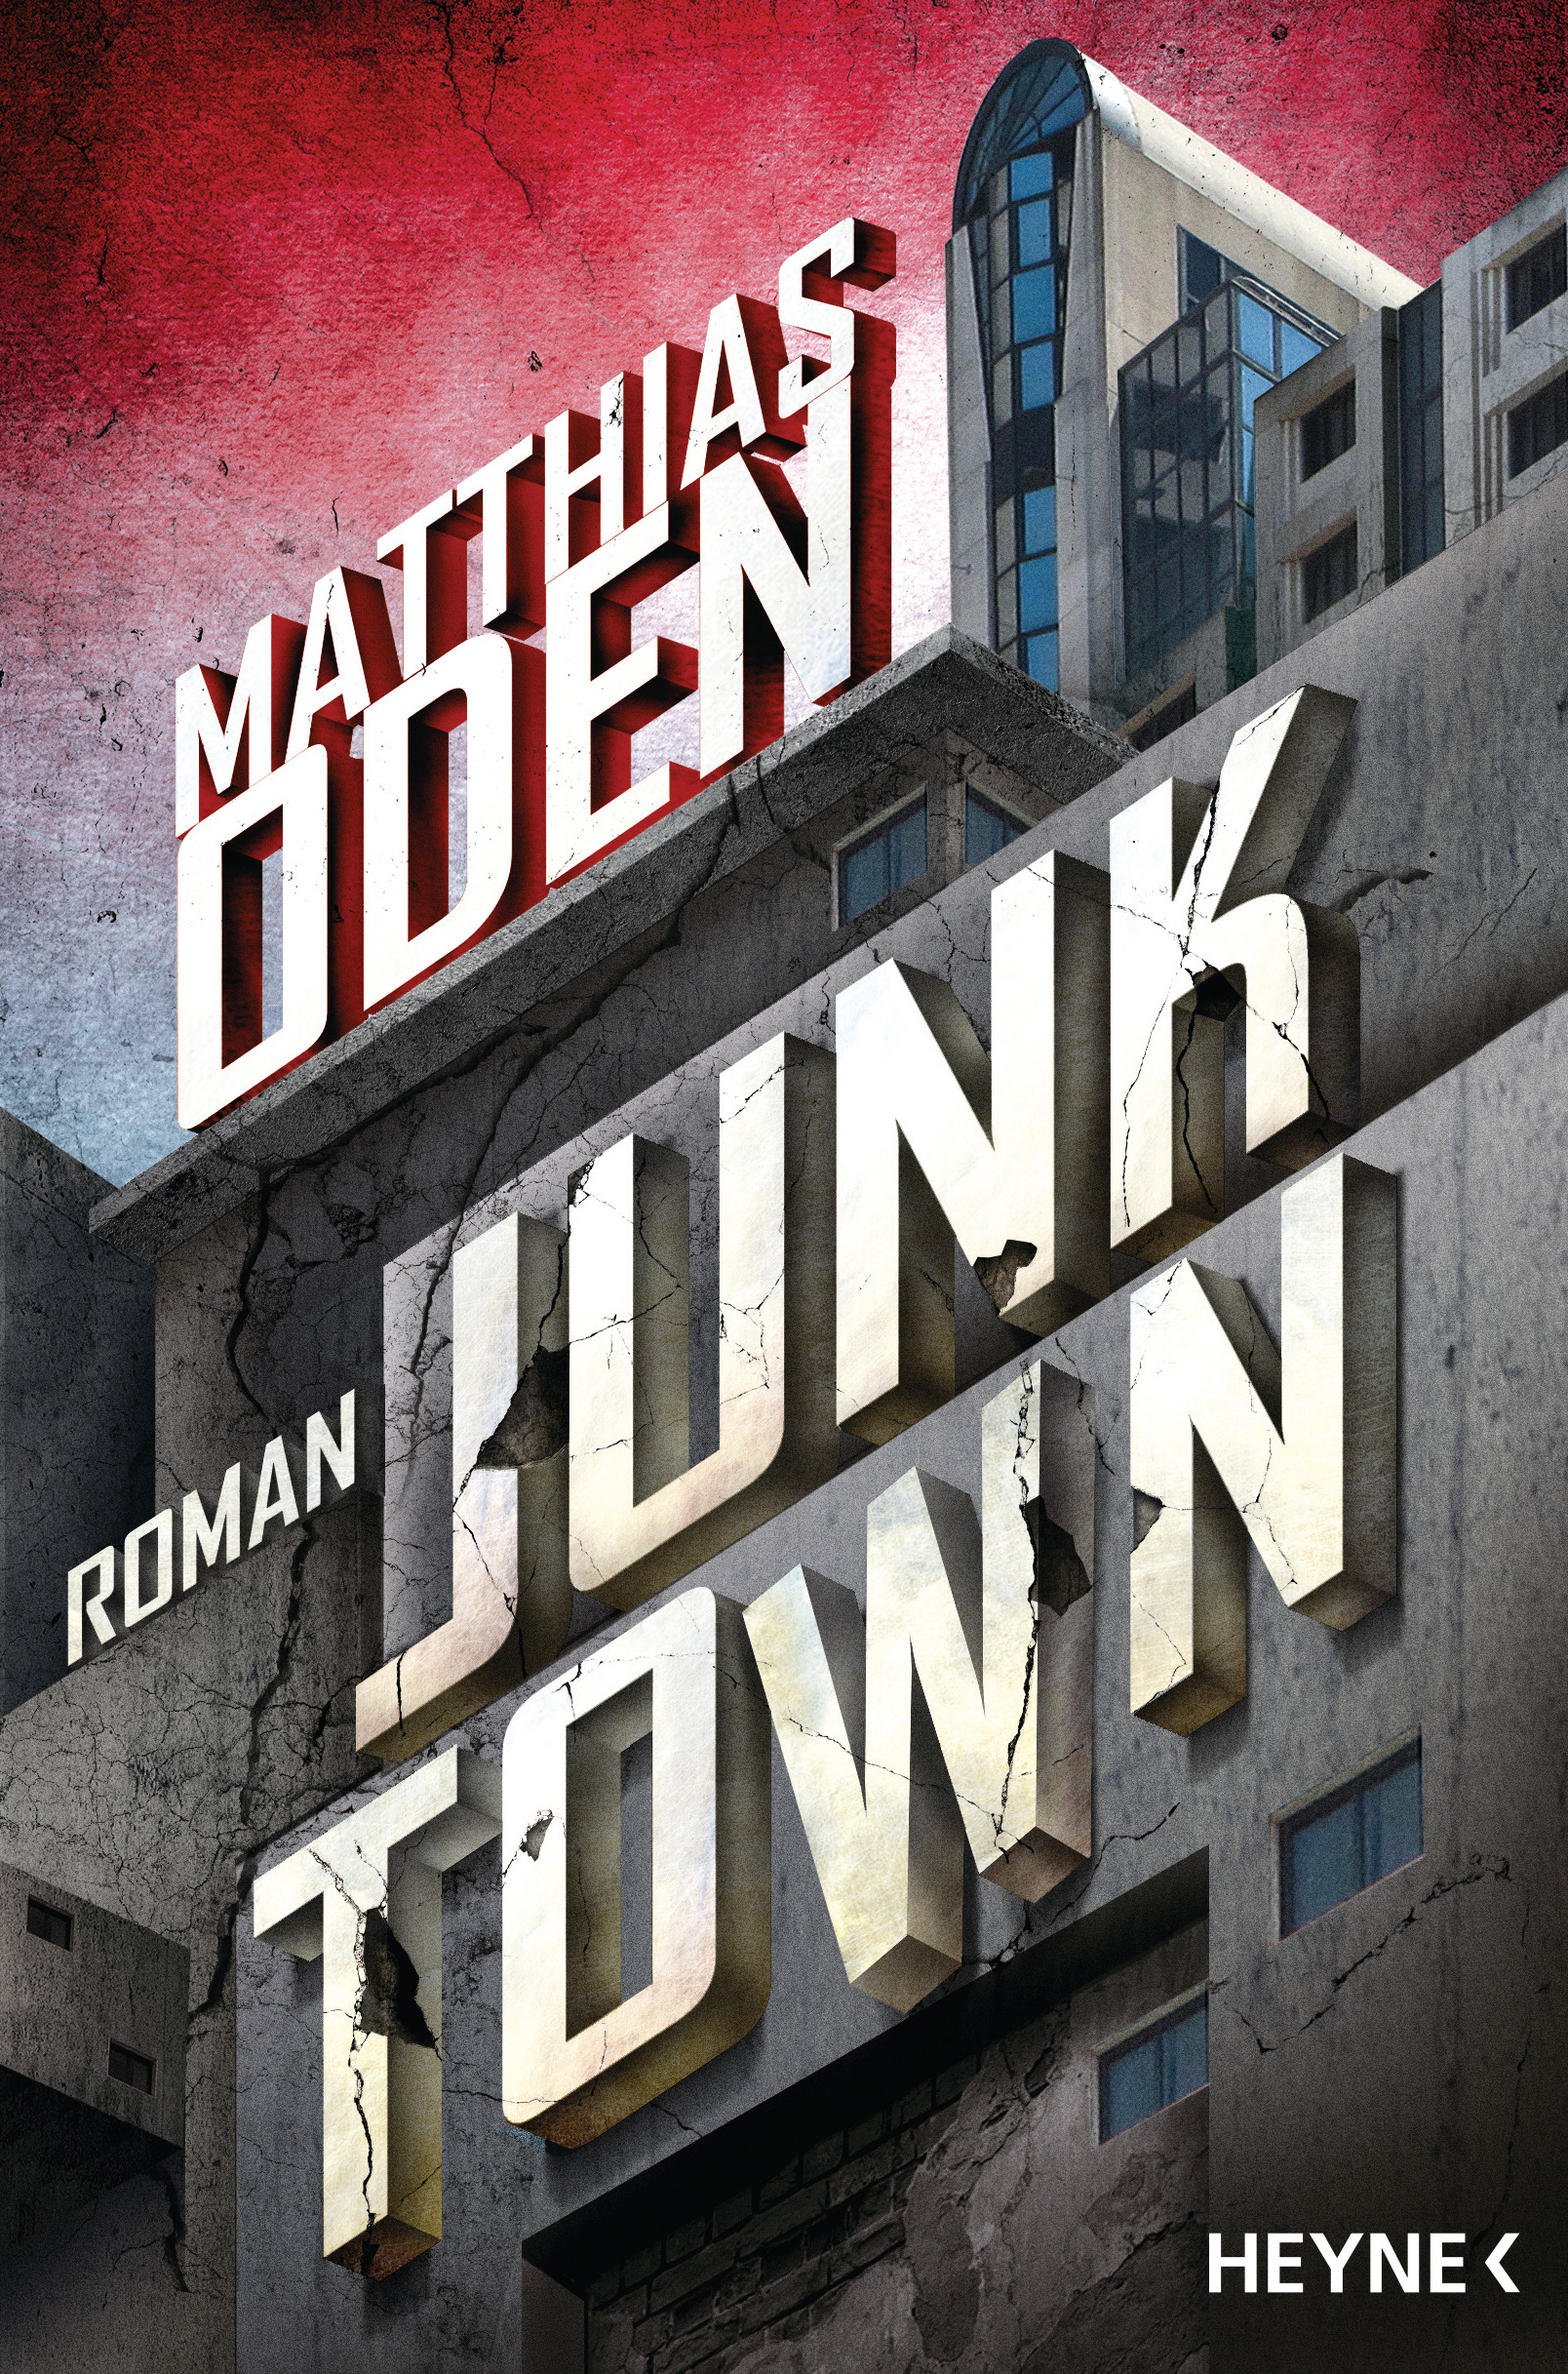 https://www.randomhouse.de/content/edition/covervoila_hires/Oden_MJunktown_180789.jpg